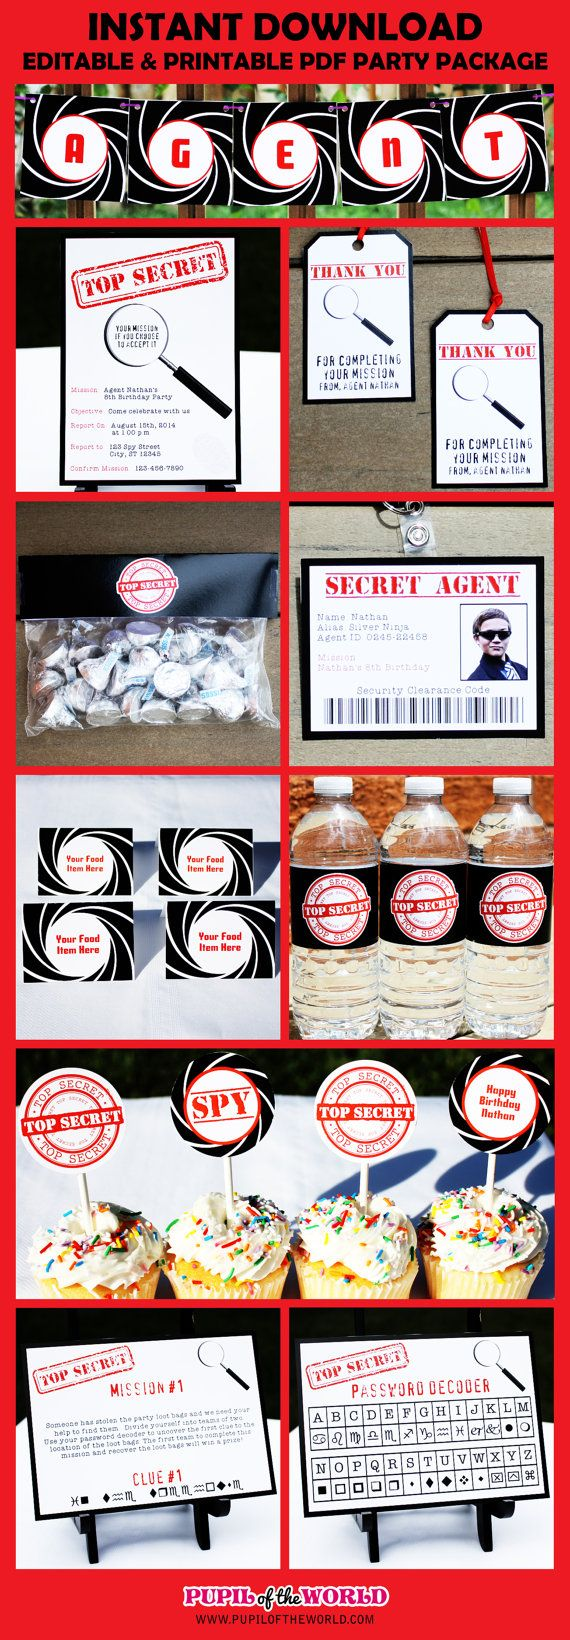 SECRET AGENT – PARTY PACKAGE  DIY Editable & Printable PDF    This is an INSTANT DOWNLOAD digital PDF file. You will be able to download the